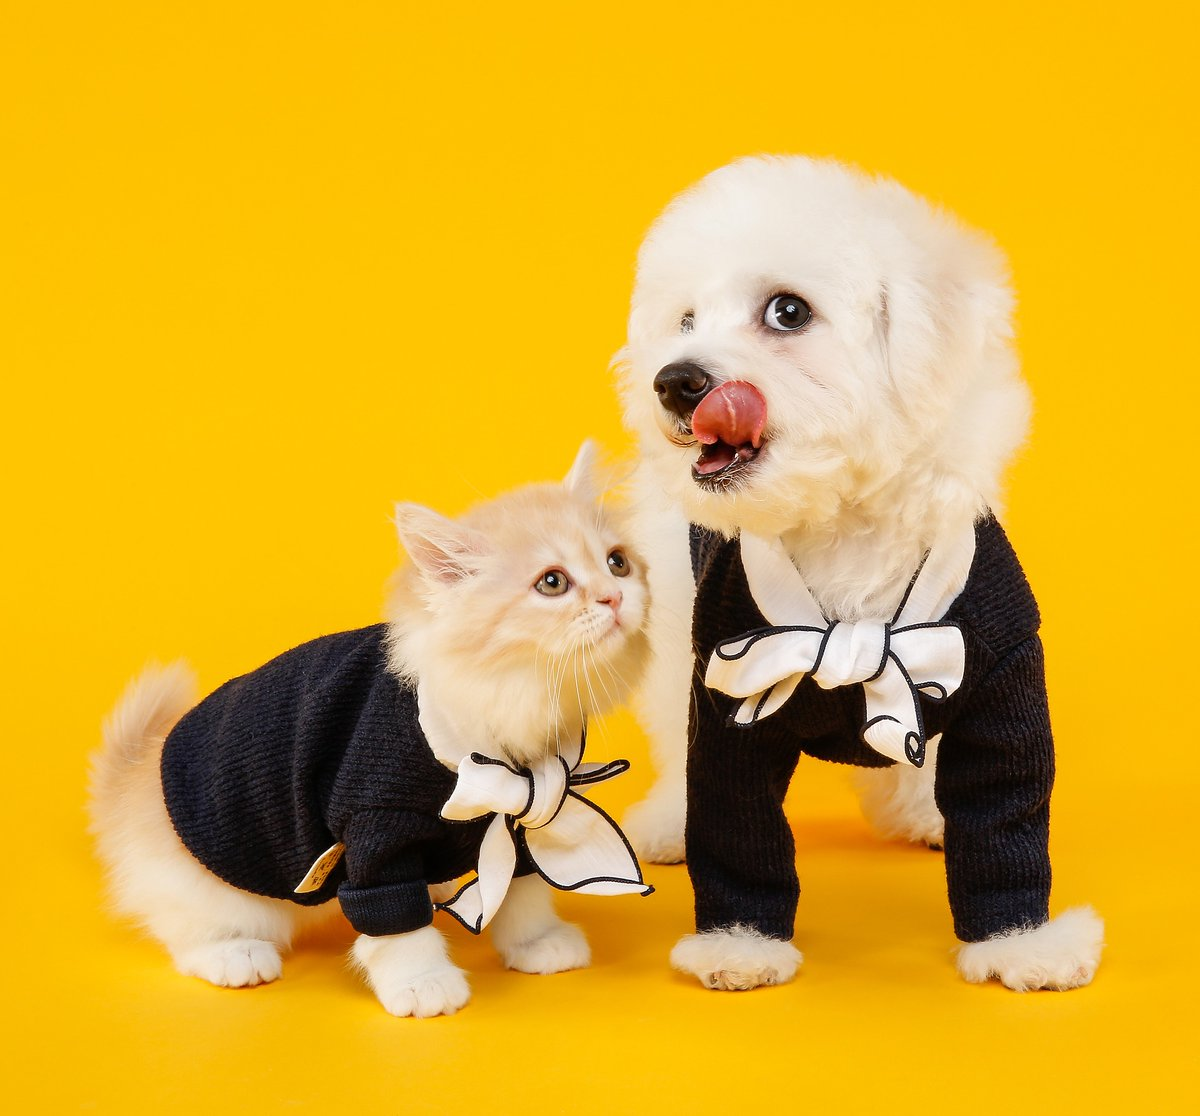 Good morning!! RT Guys! #rt Everything for your Pet !!! PET NEWS https://t.co/QfVuiUwrxC #love #pet #pets #animal #follow #funny friends style fashion food travel https://t.co/ZRyppvR1jb